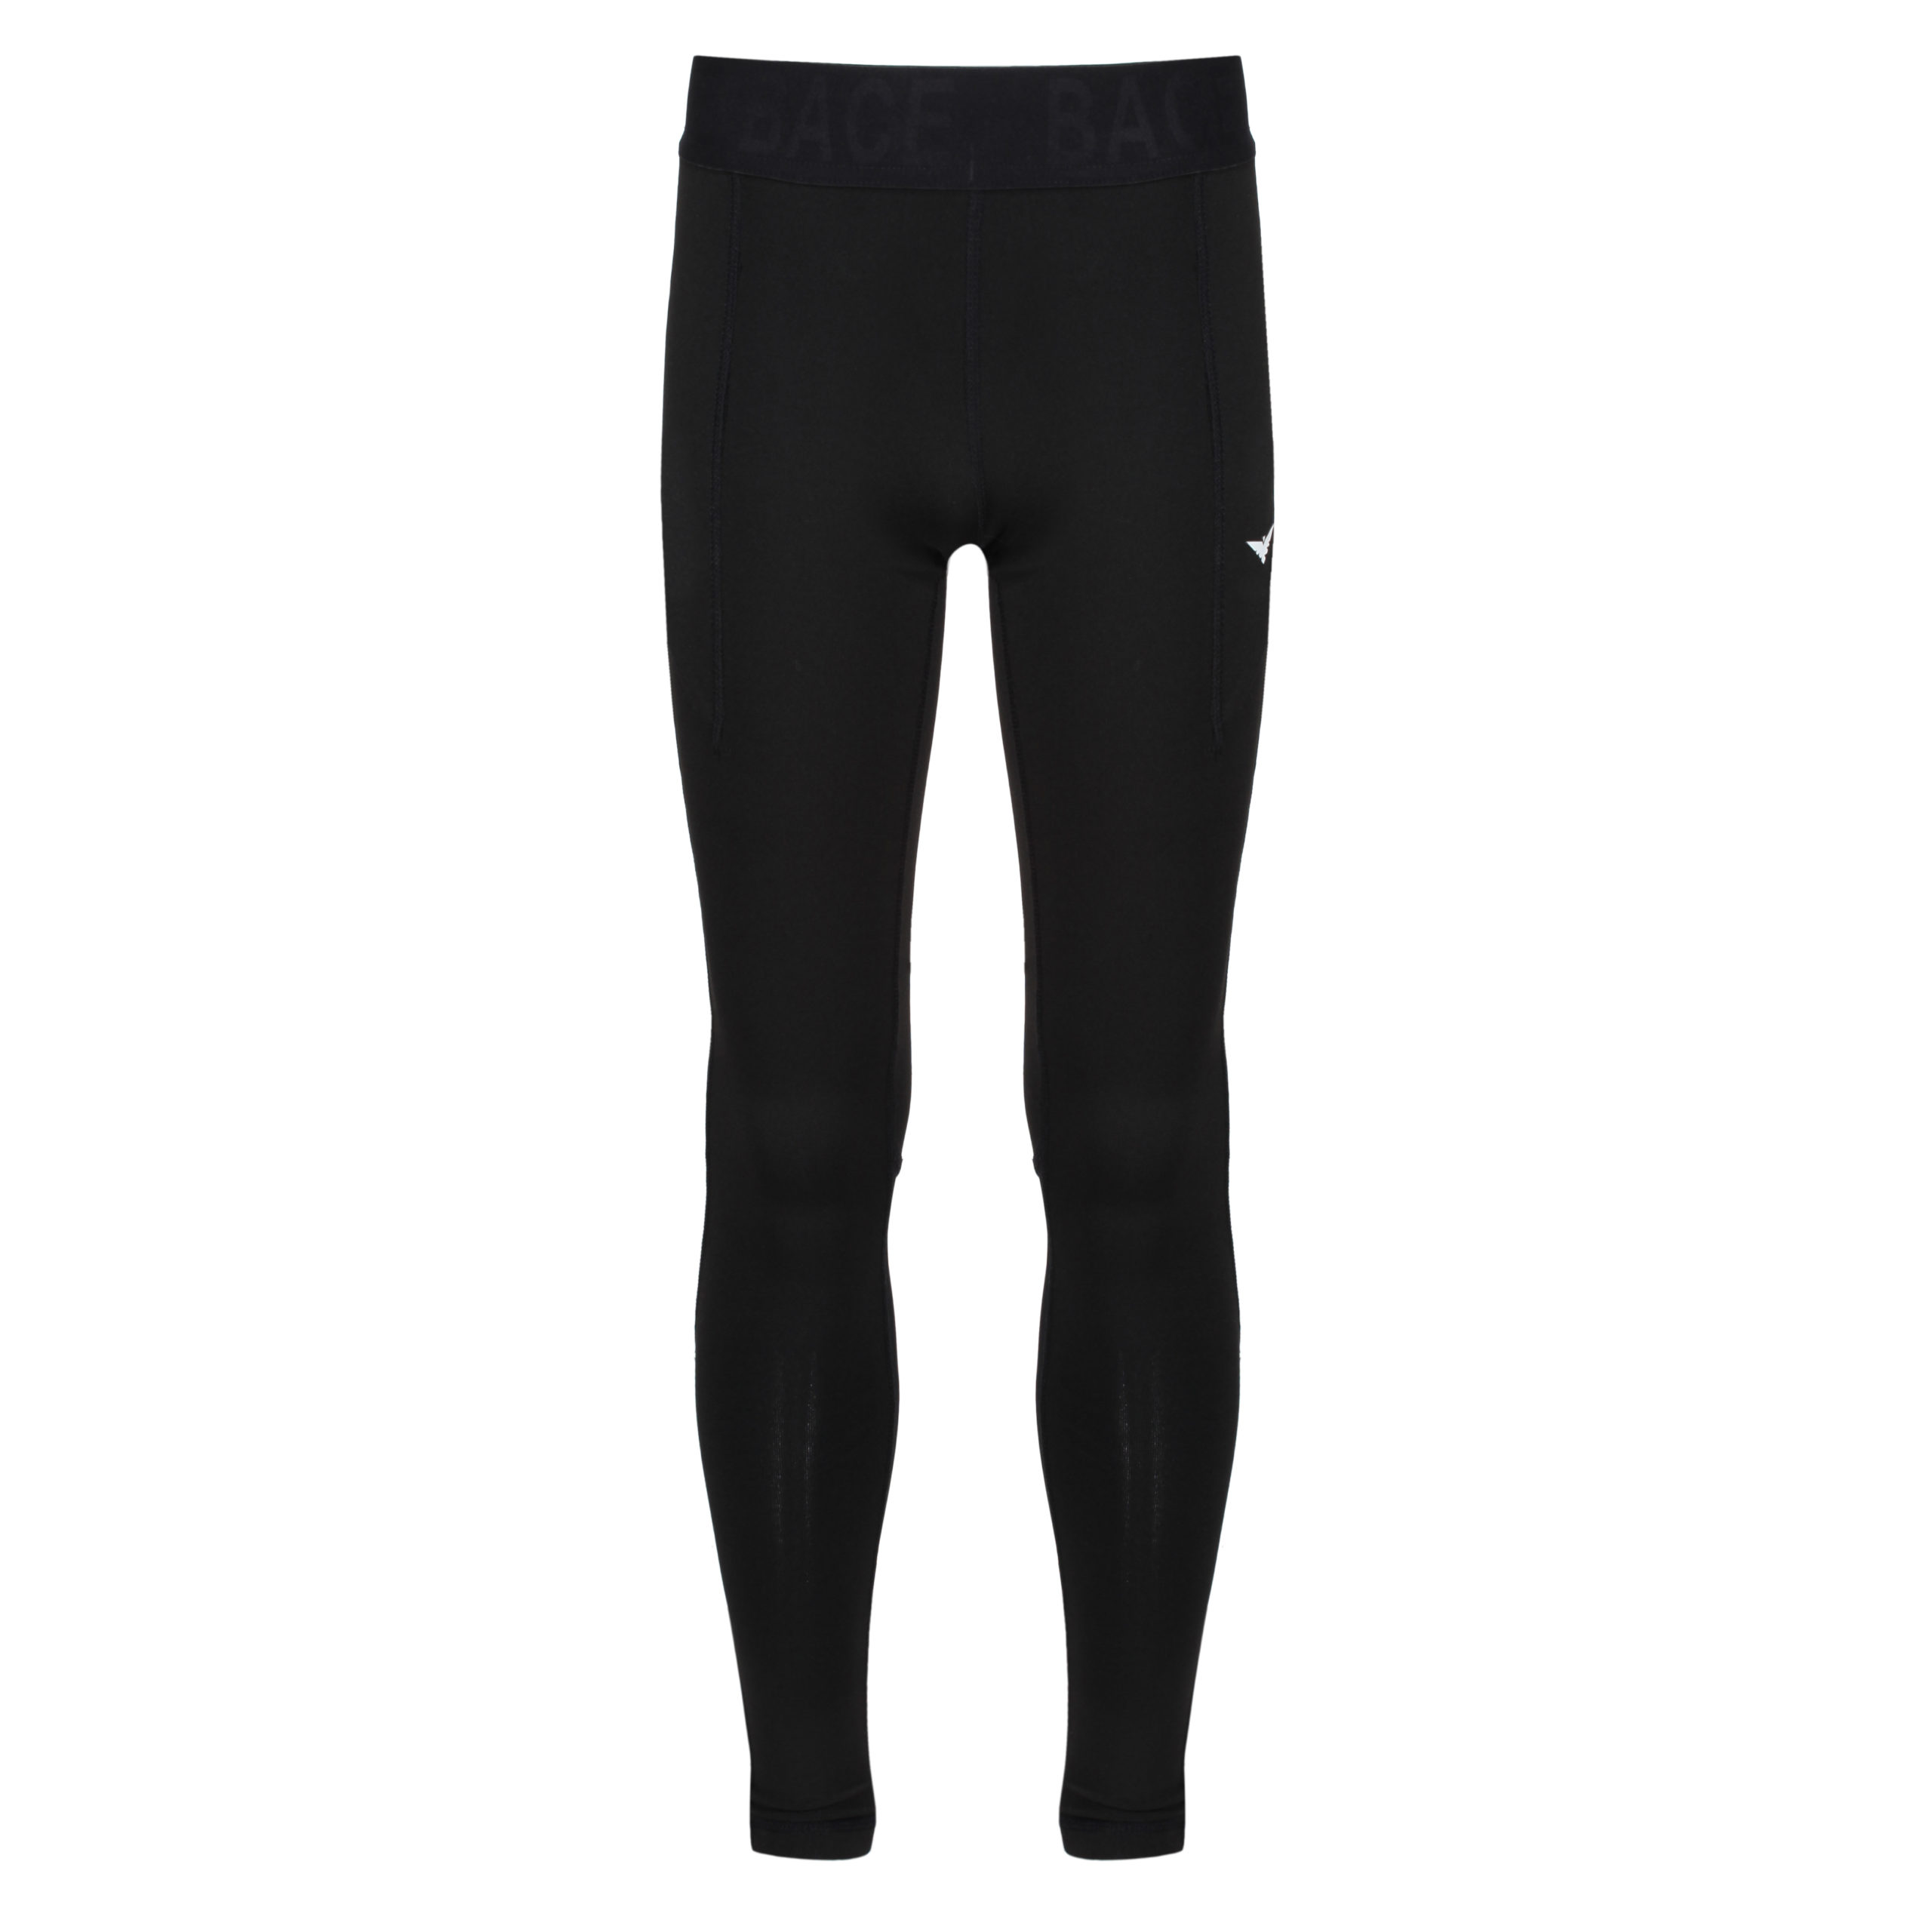 Black Tennis Tights With Ball Pockets Ball Pocket Tights Black Leggings Tennis Leggings Bace Sports Wear